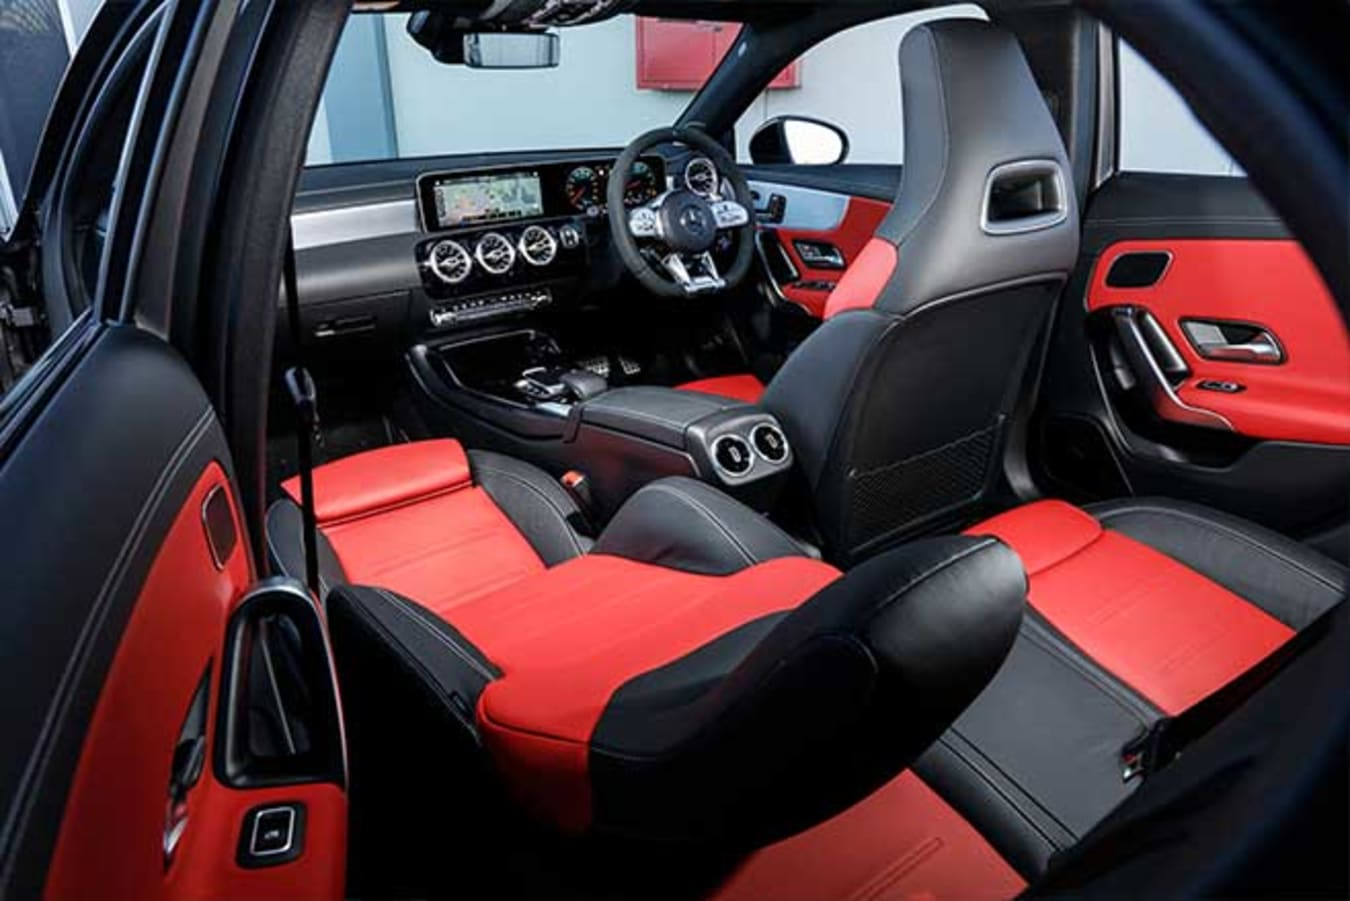 The A45 AMG interior is loaded with equipment as standard